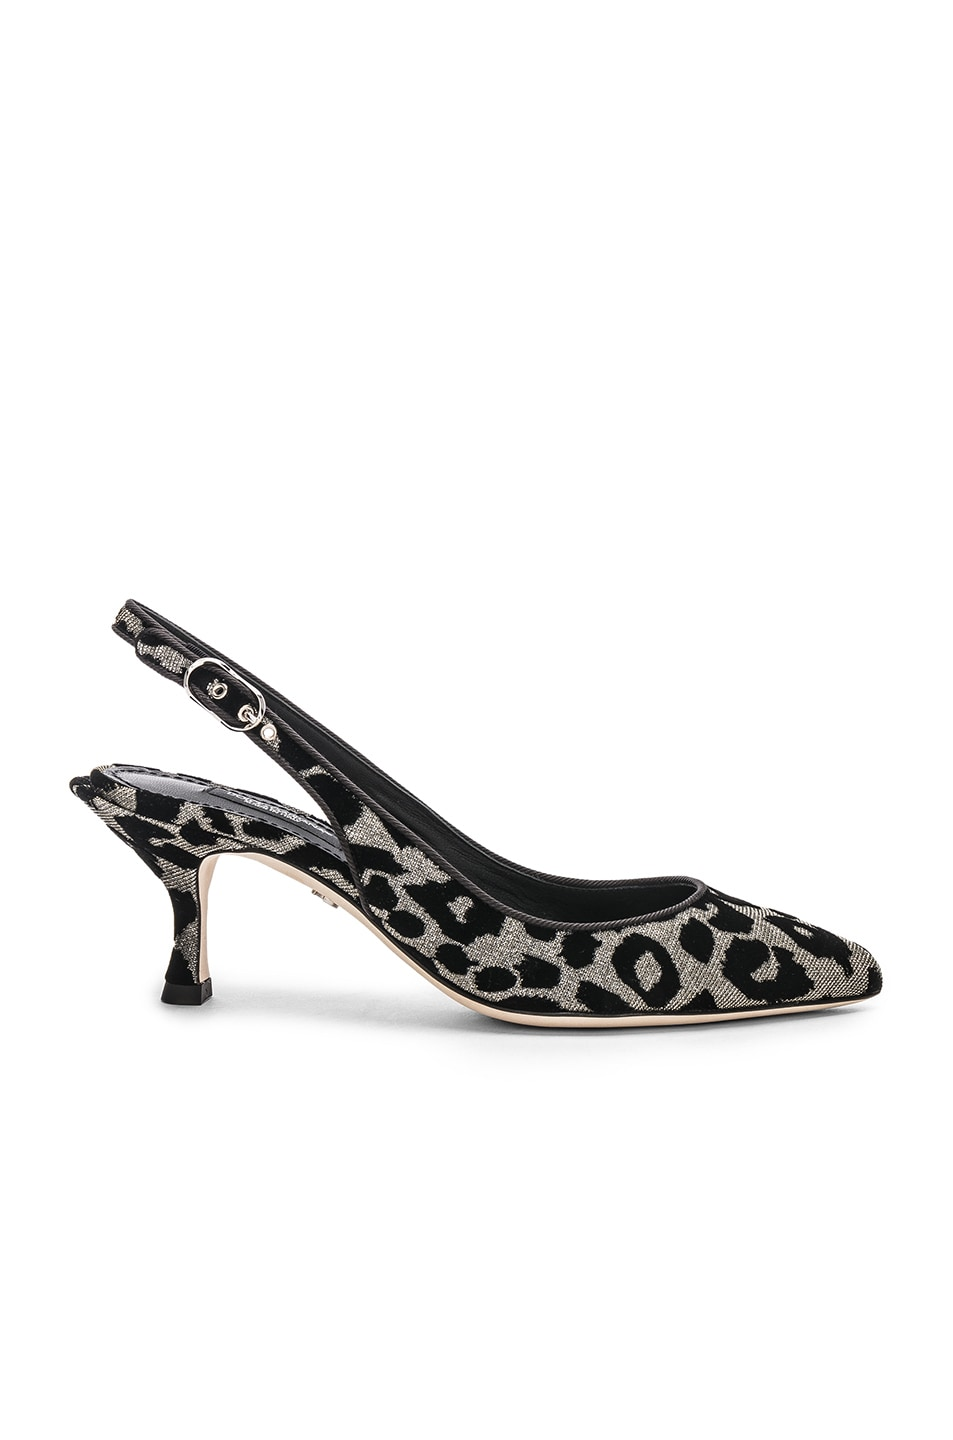 Image 1 of Dolce & Gabbana Leo Print Slingback Pumps in Gray